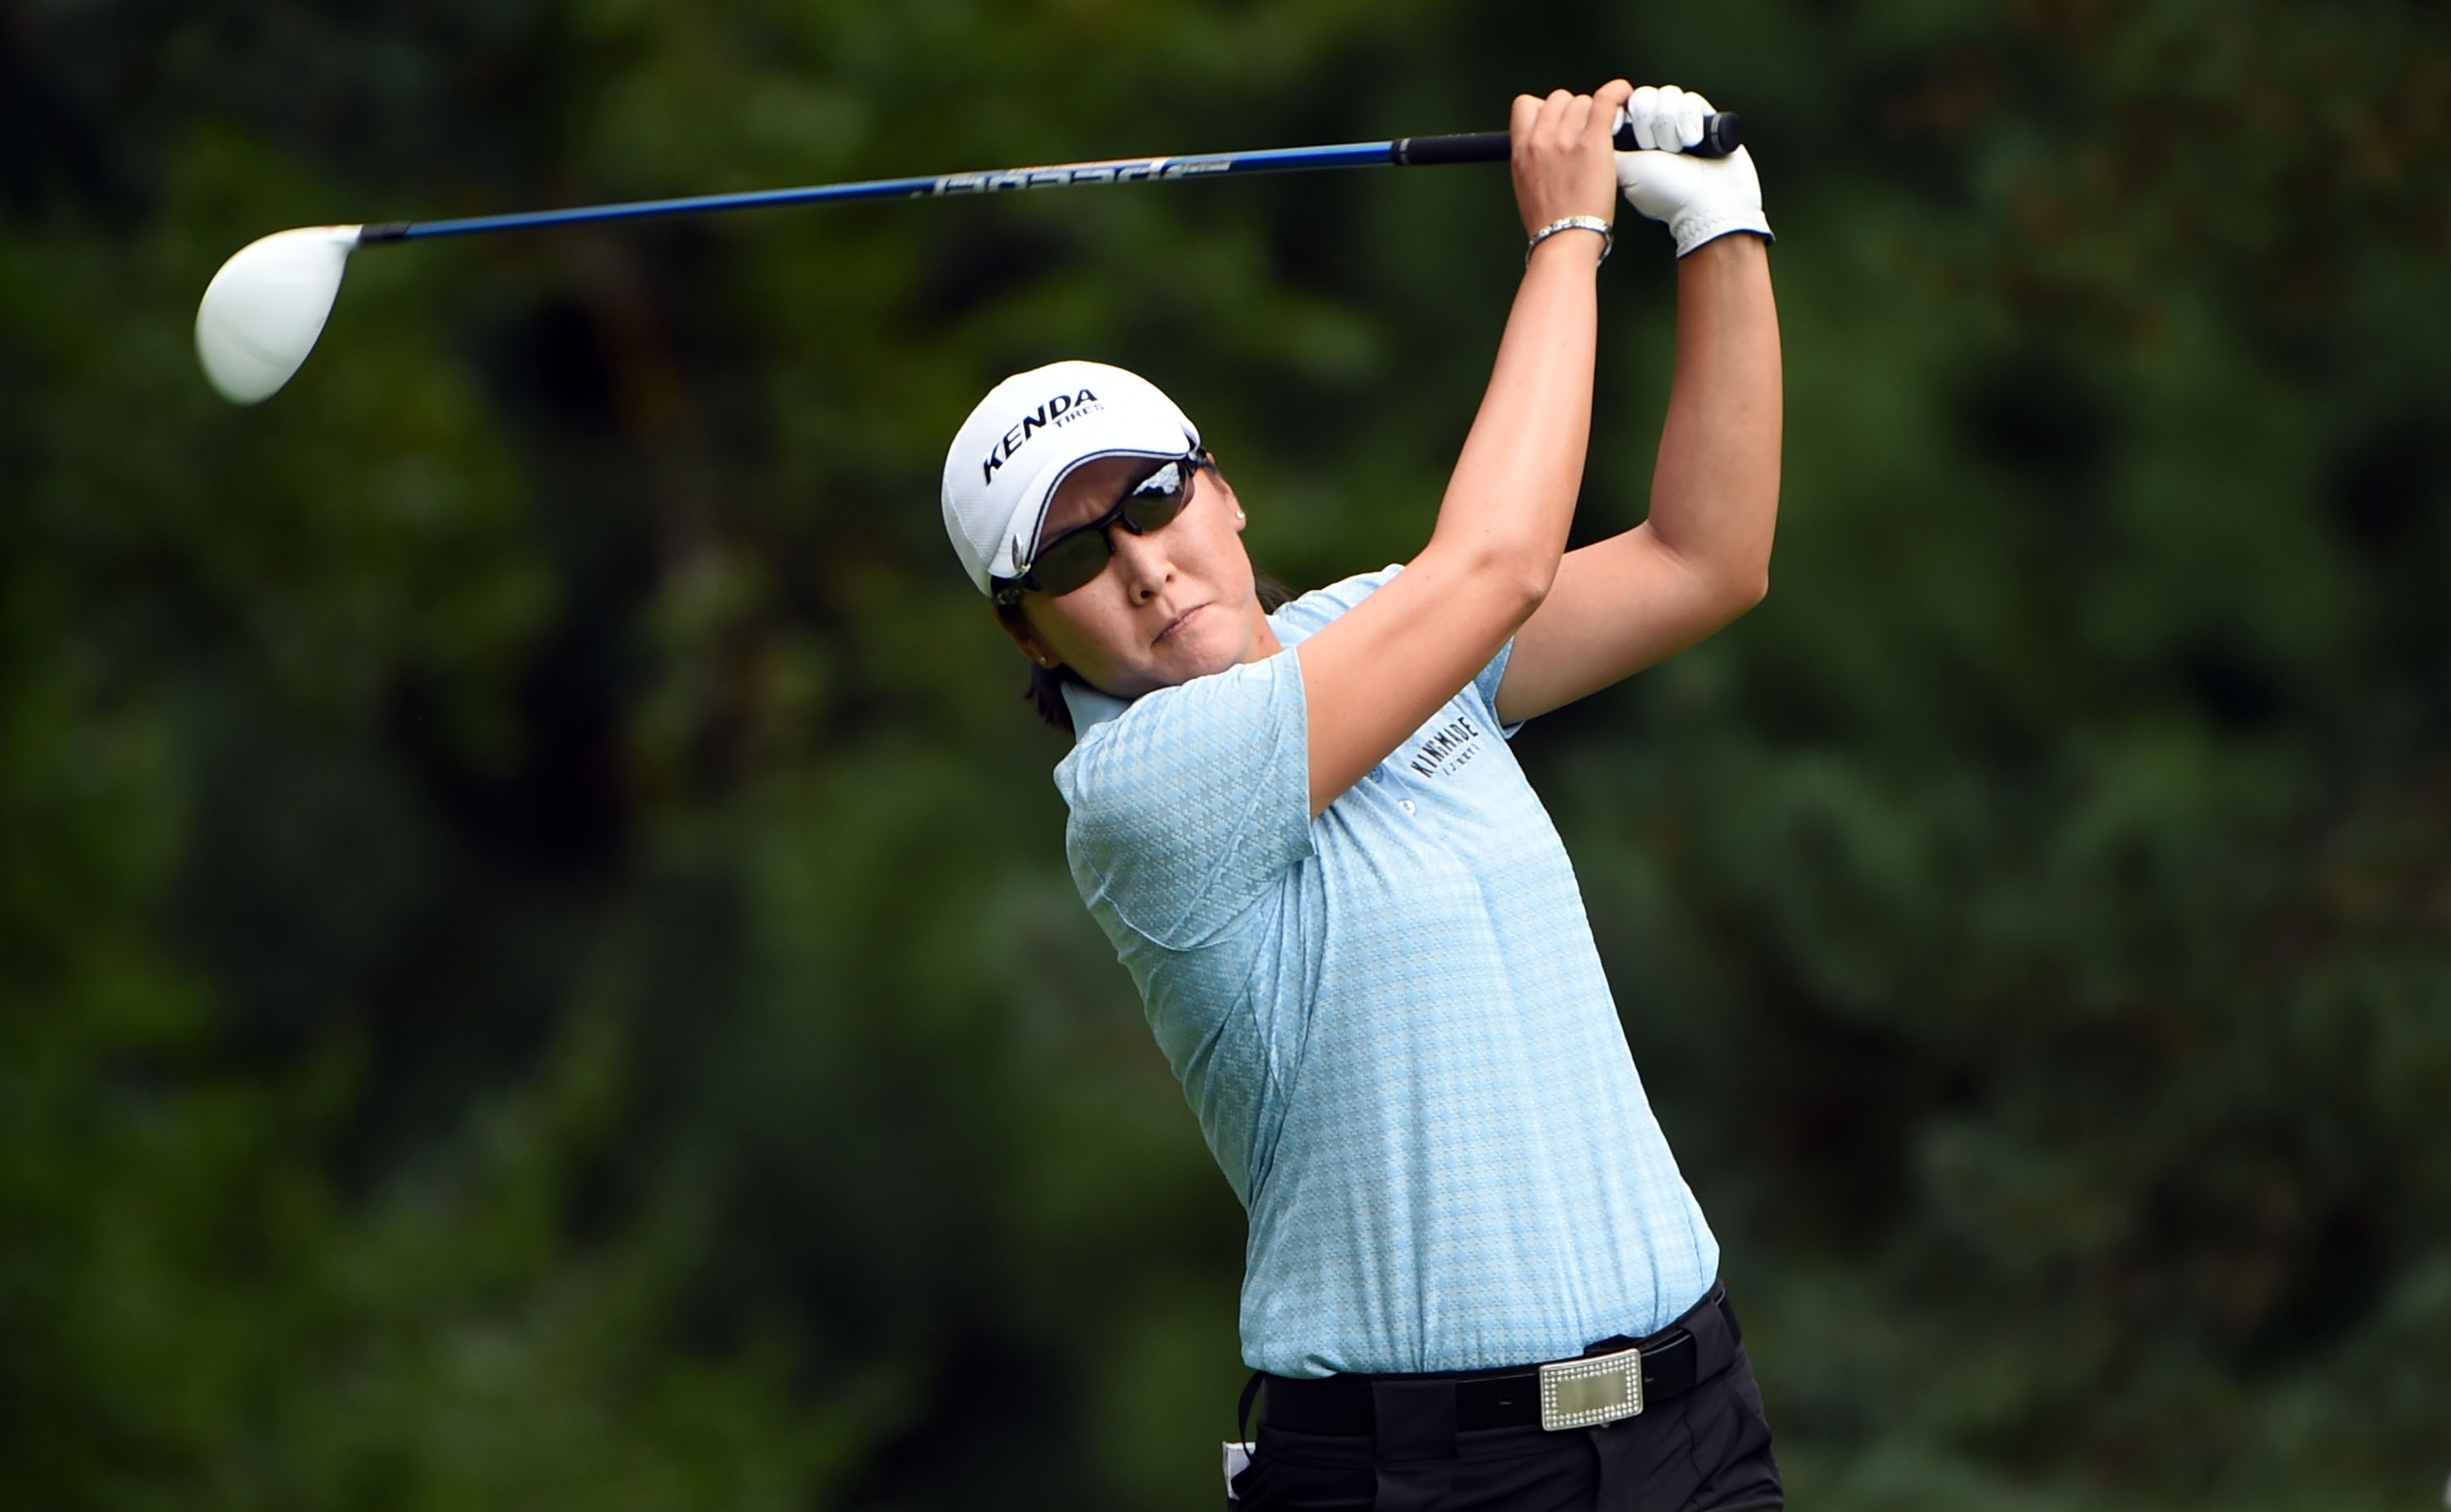 Candie Kung of Taiwan hits her tee shot on the third hole during the third round of the LPGA Cambia Portland golf tournament in Portland, Ore., Saturday, Aug. 15, 2015. (AP Photo/Steve Dykes)